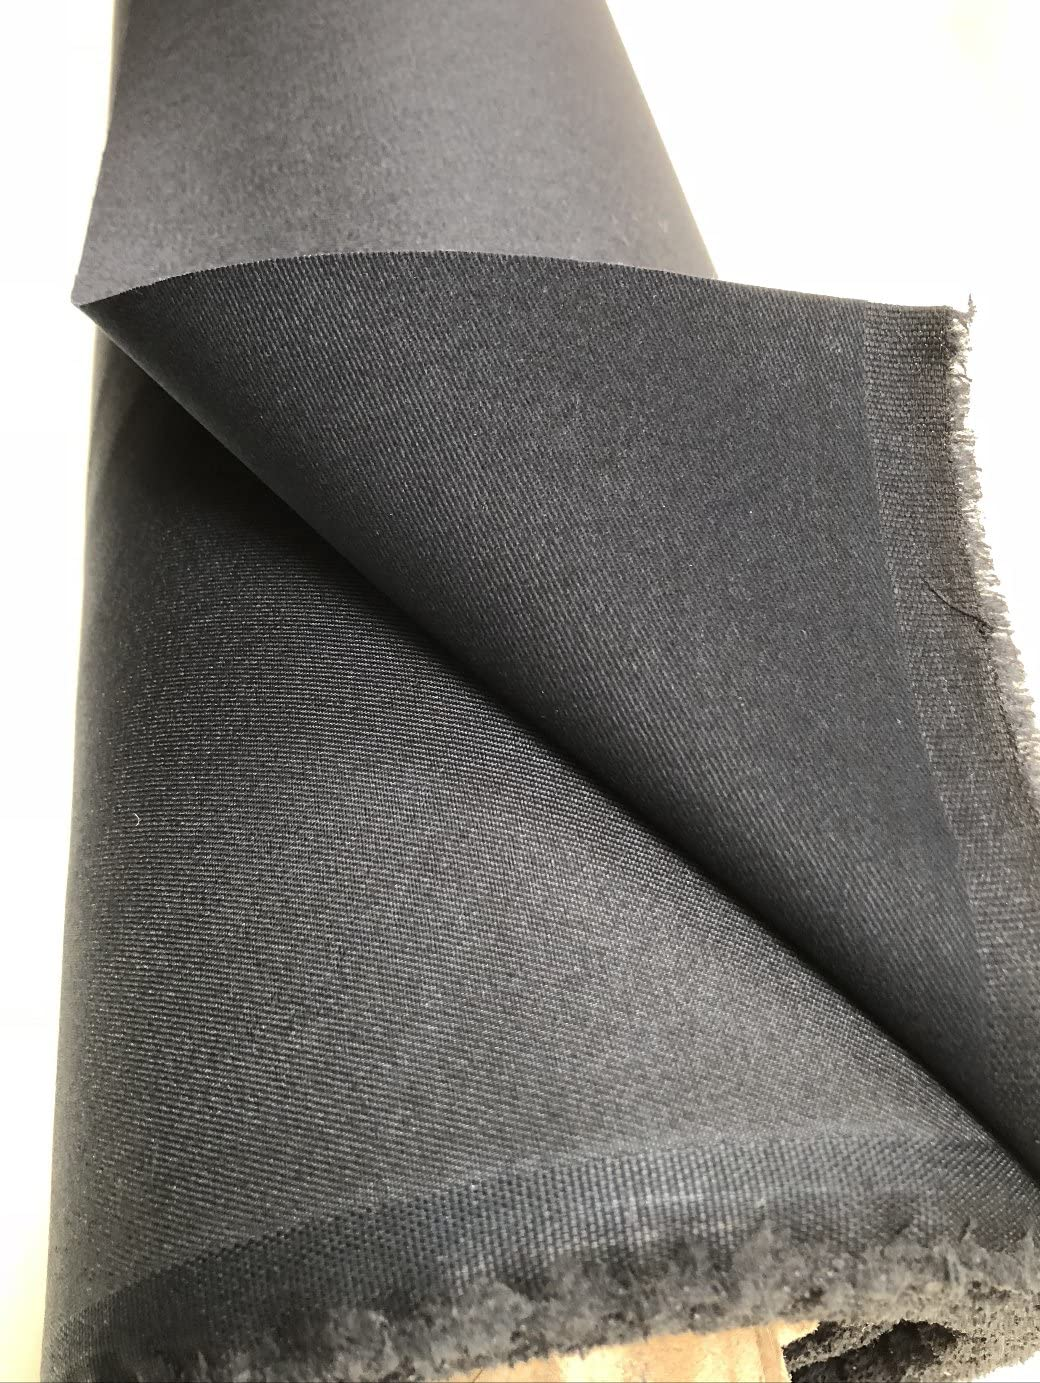 """BayTrim Decking Fabric 32"""" Wide. service Tan Clearance SALE! Limited time! Black 10 Yards or"""